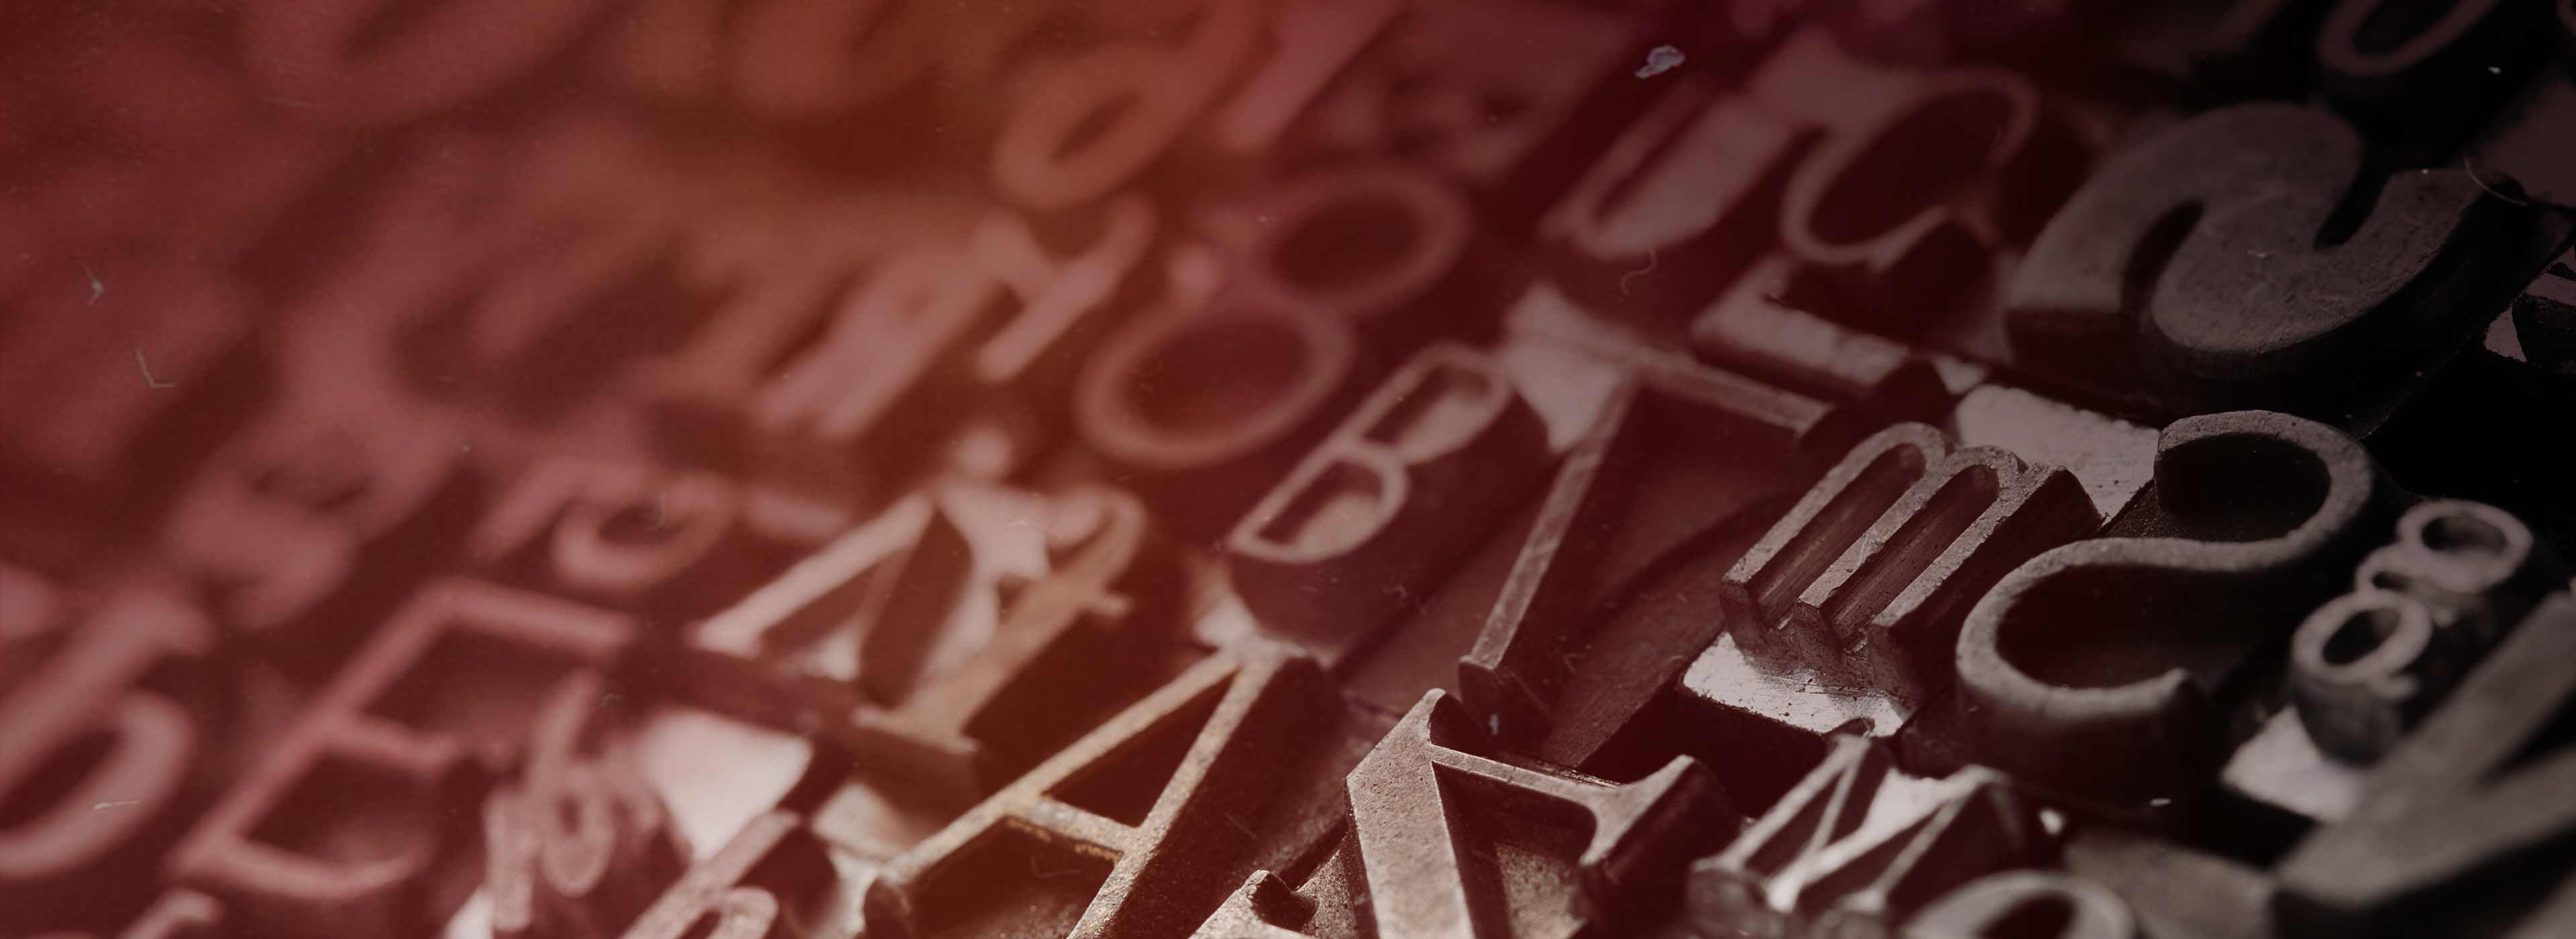 Close-up of antique printing press letters